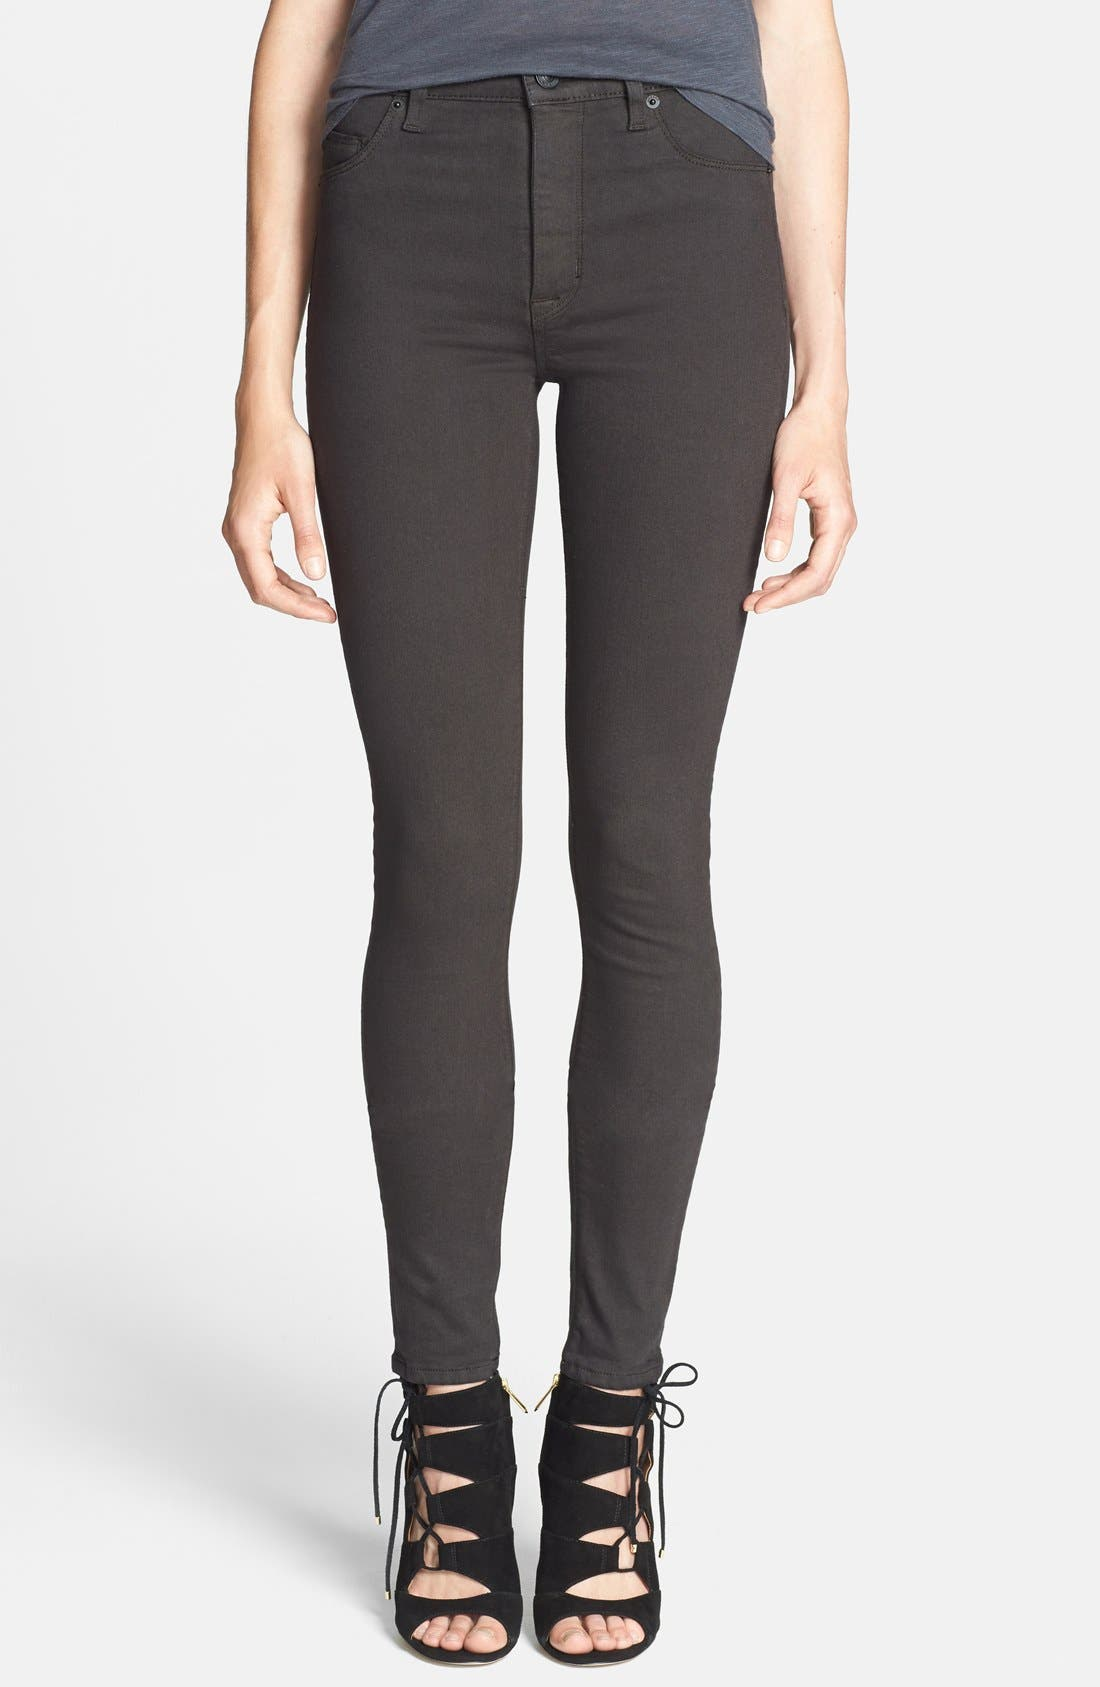 Alternate Image 1 Selected - Hudson Jeans 'Barbara' High Rise Skinny Jeans (Brown) (Nordstrom Exclusive)